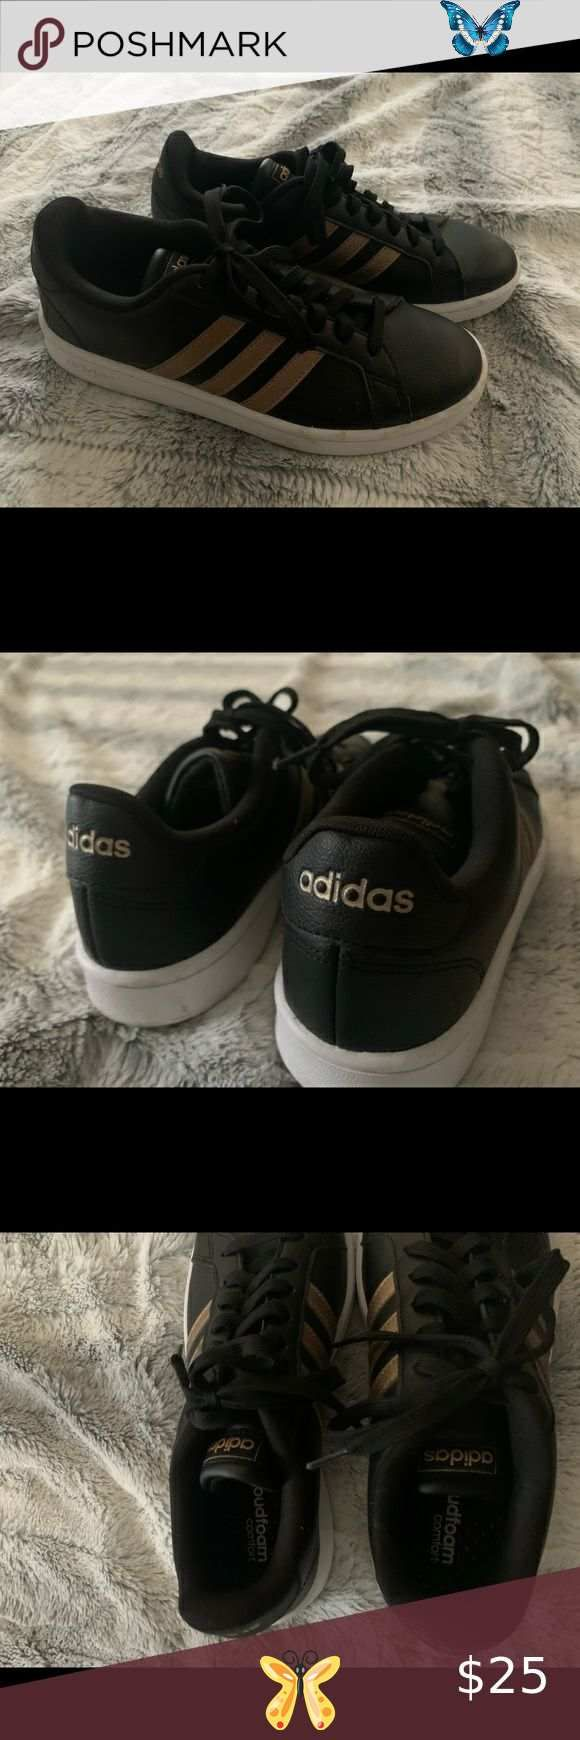 black adidas shoes with gold stripes